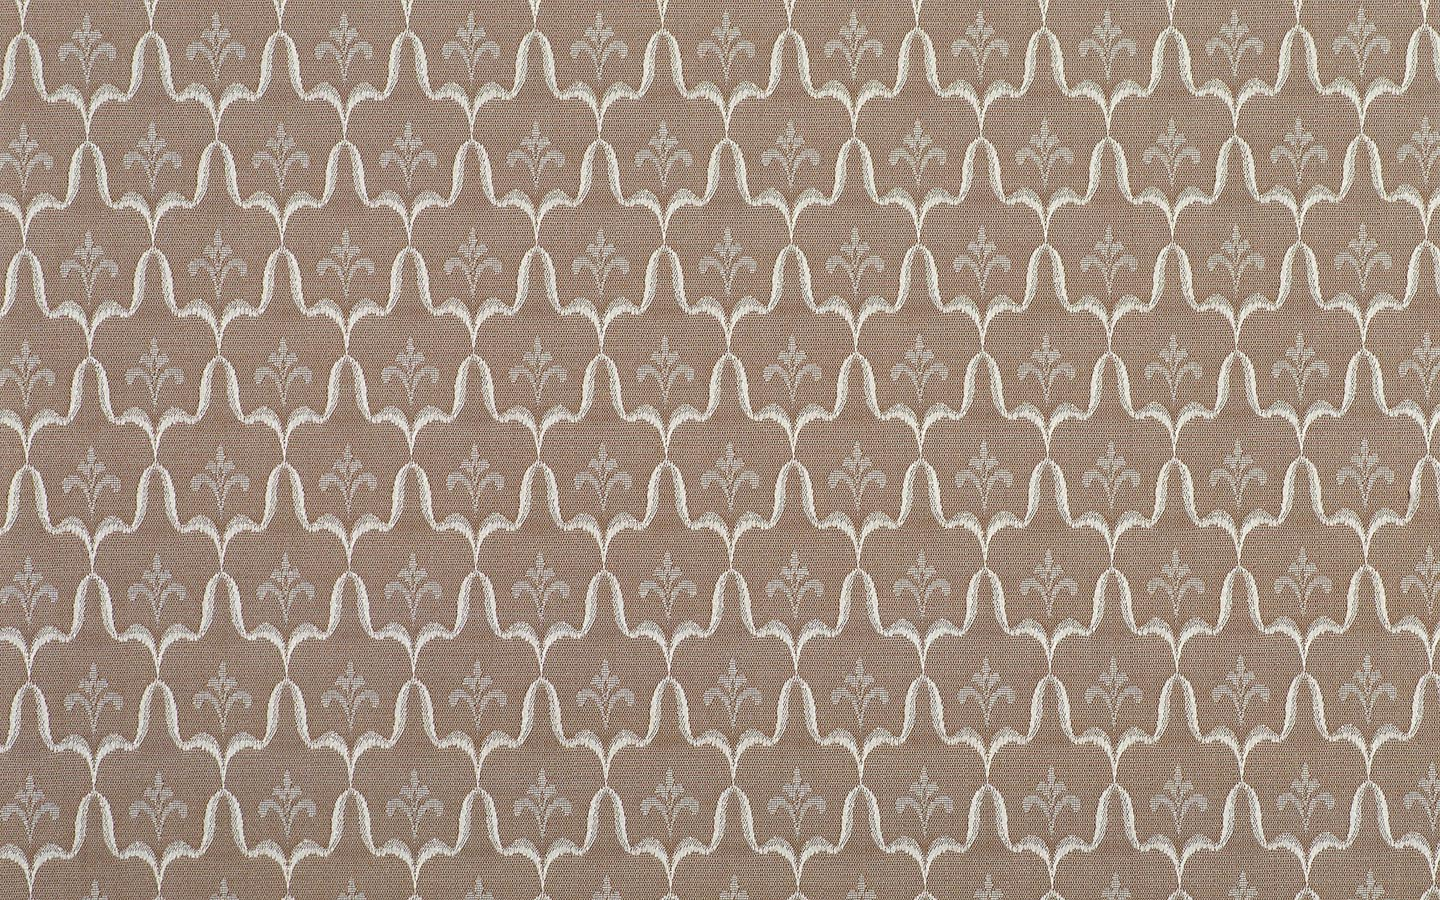 Fabric texture 15260